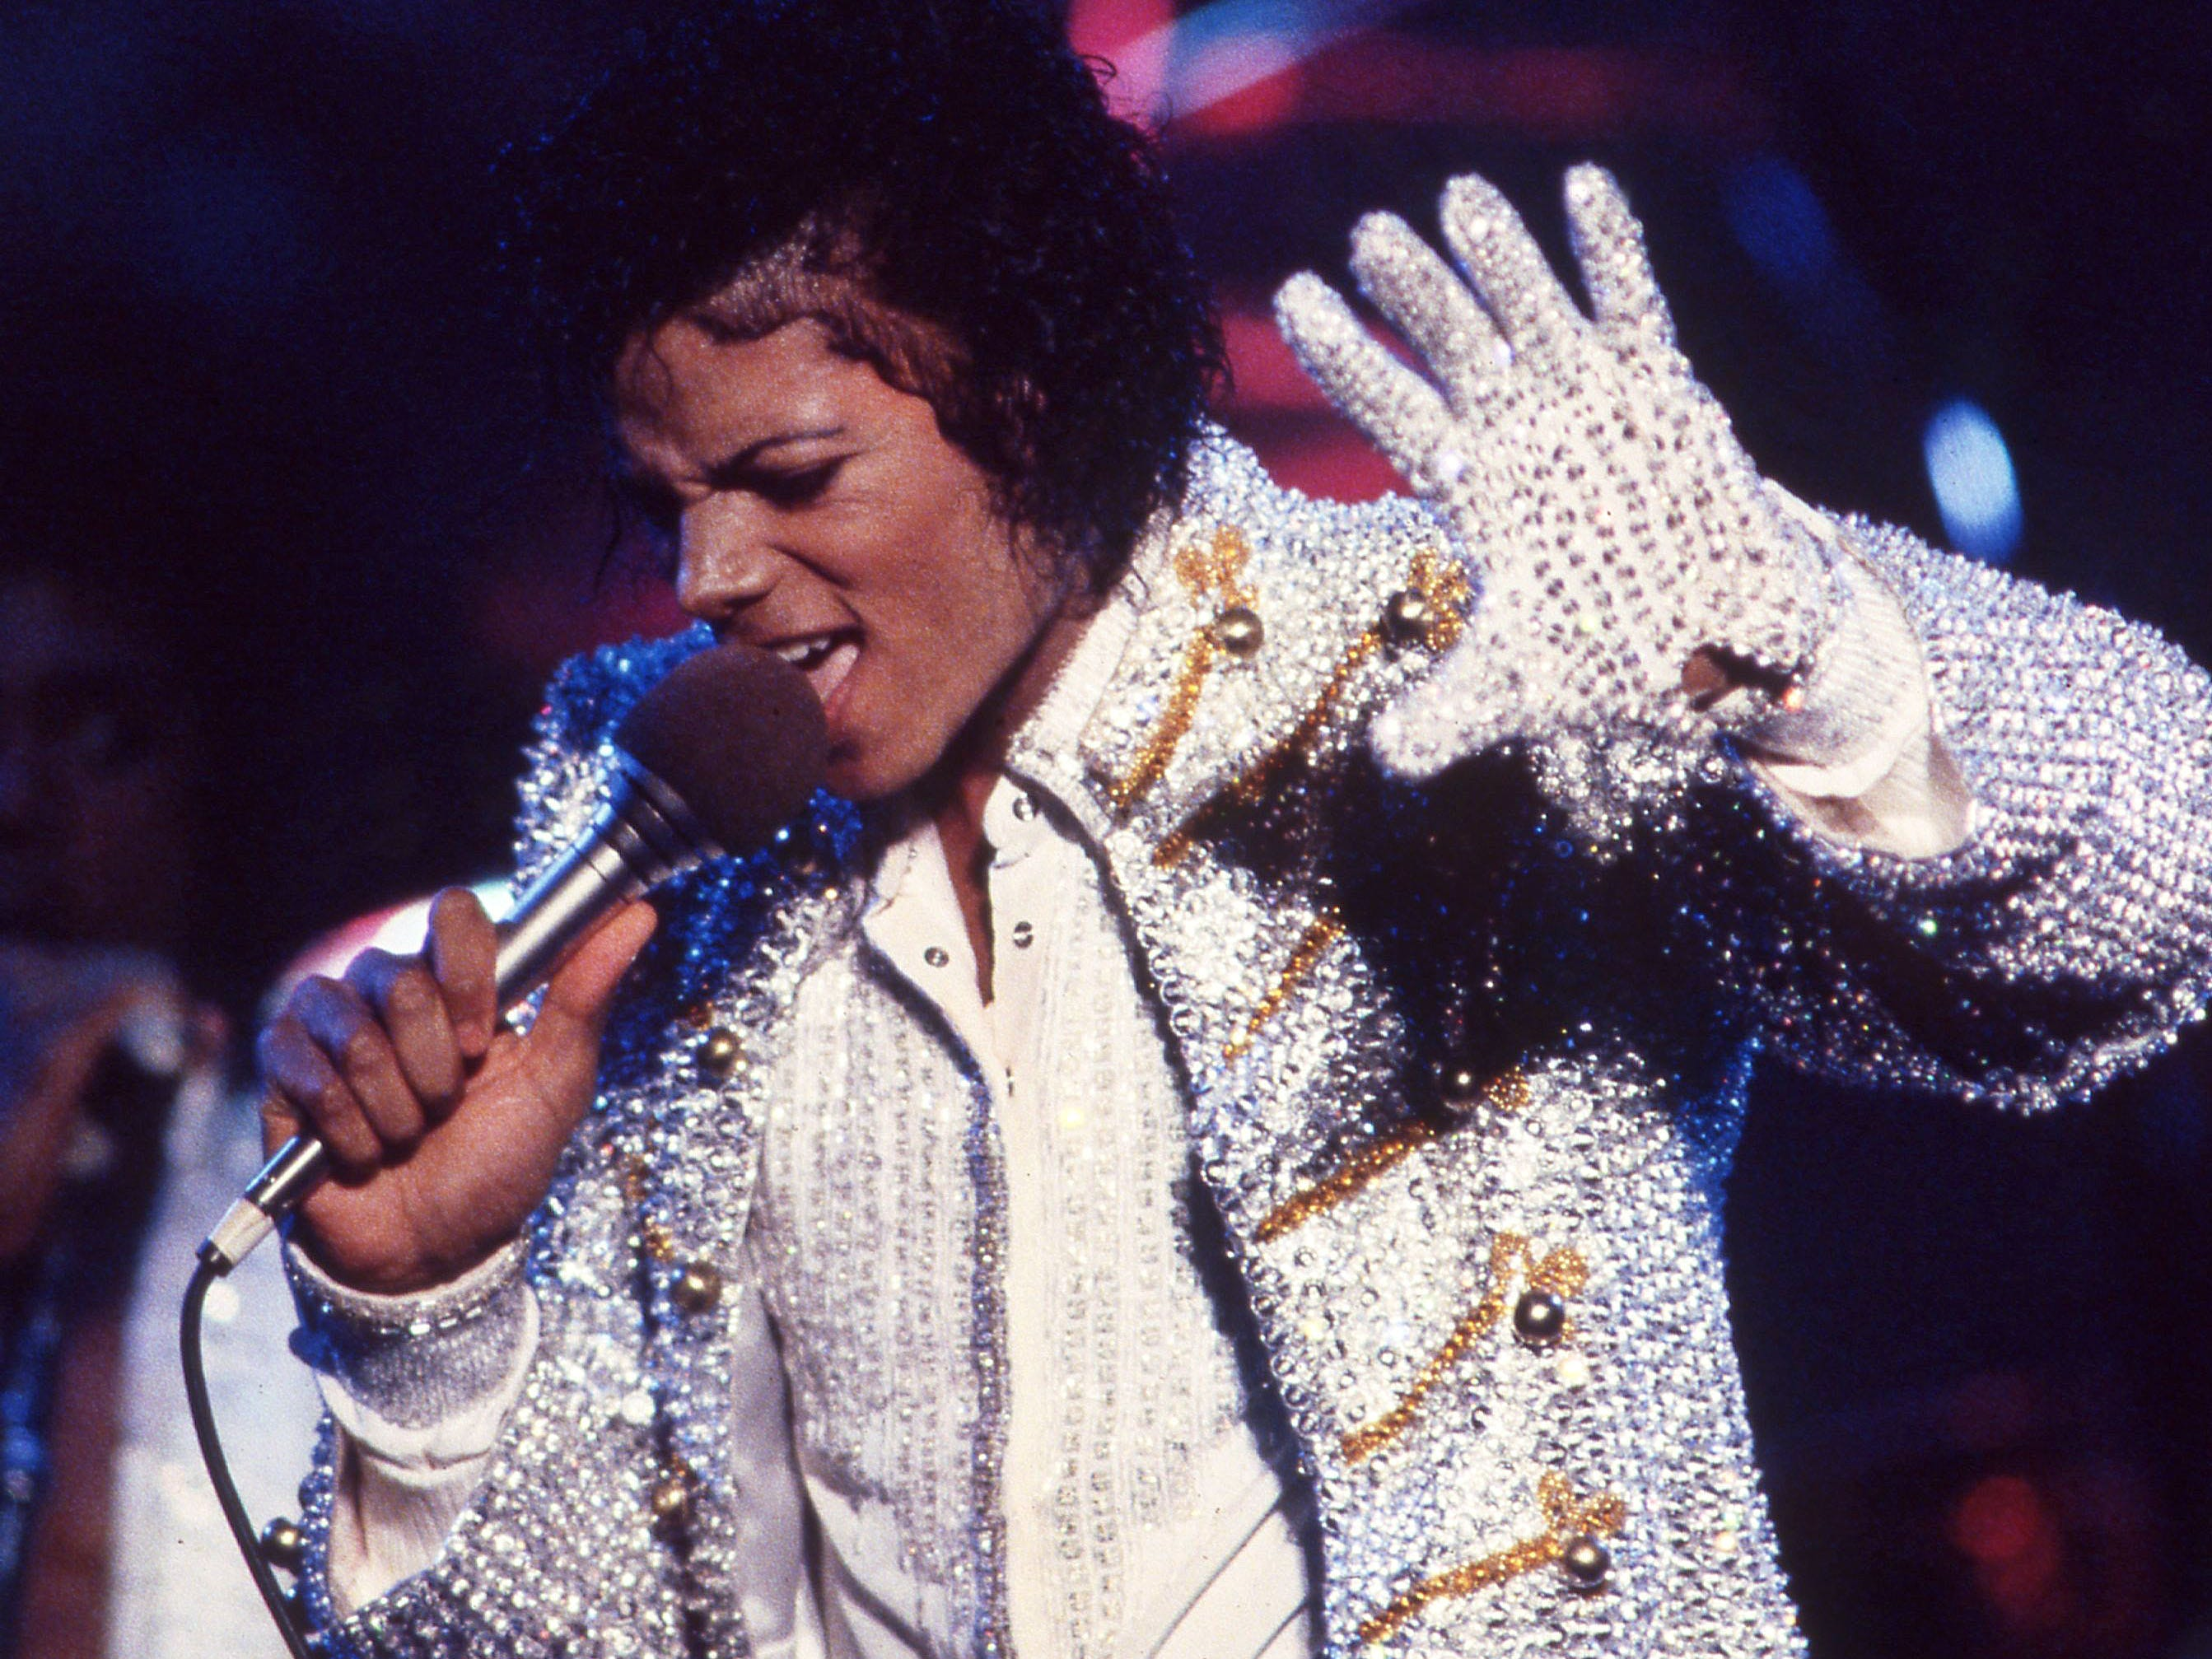 Pop singer Michael Jackson played for about 65,000 fans in Neyland Stadium in Knoxville in August of 1984.